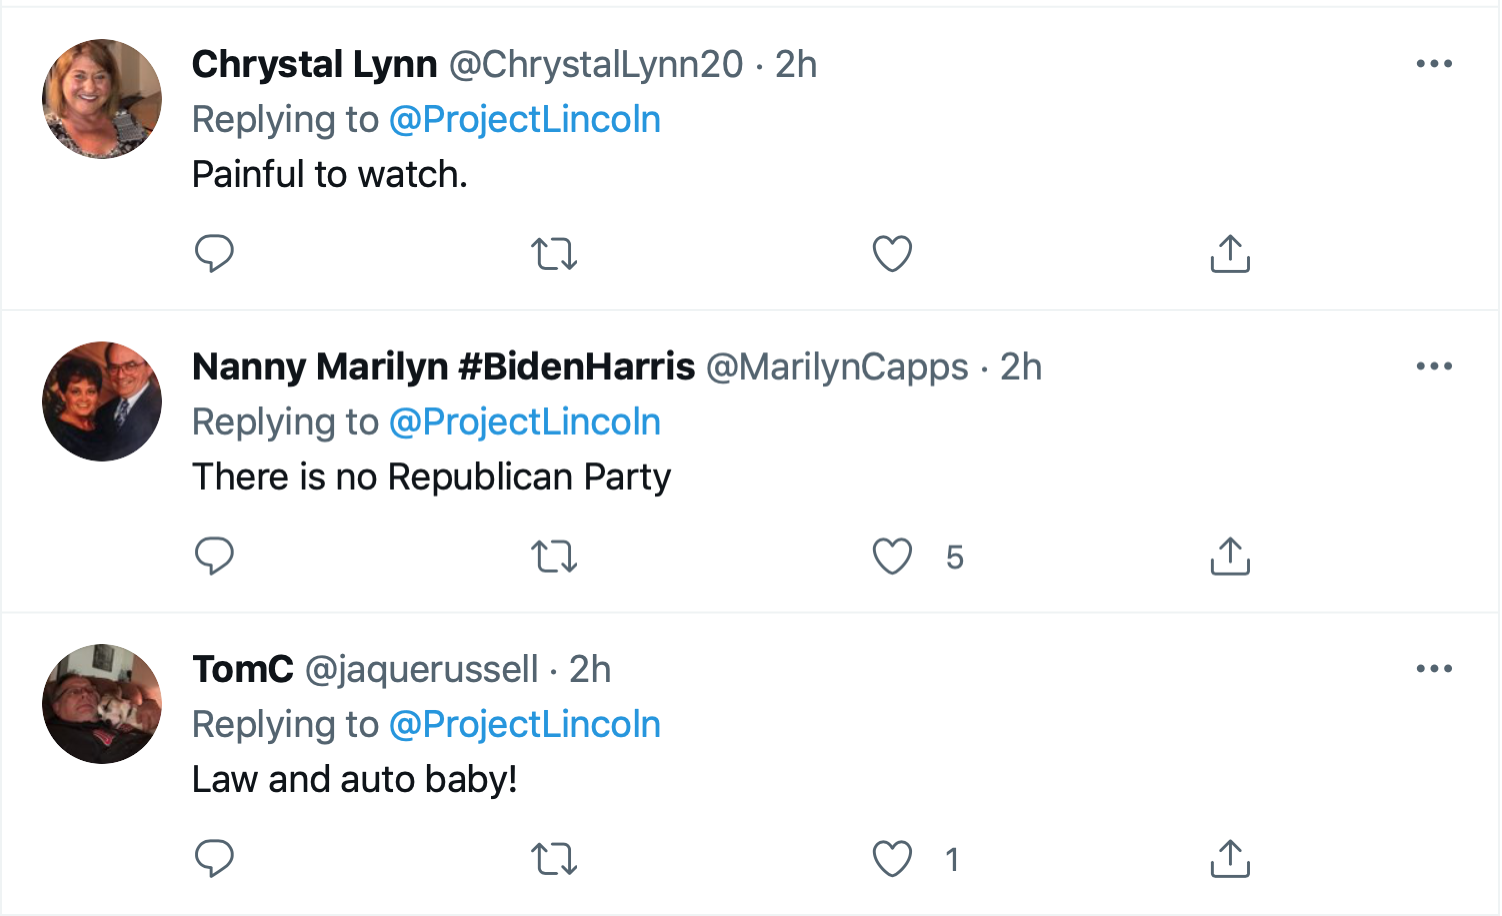 Screen-Shot-2021-06-29-at-11.12.29-AM The Lincoln Project' Expose The GOP Traitors In New Video Release Conspiracy Theory Corruption Donald Trump Featured Politics Social Media Top Stories Twitter Videos